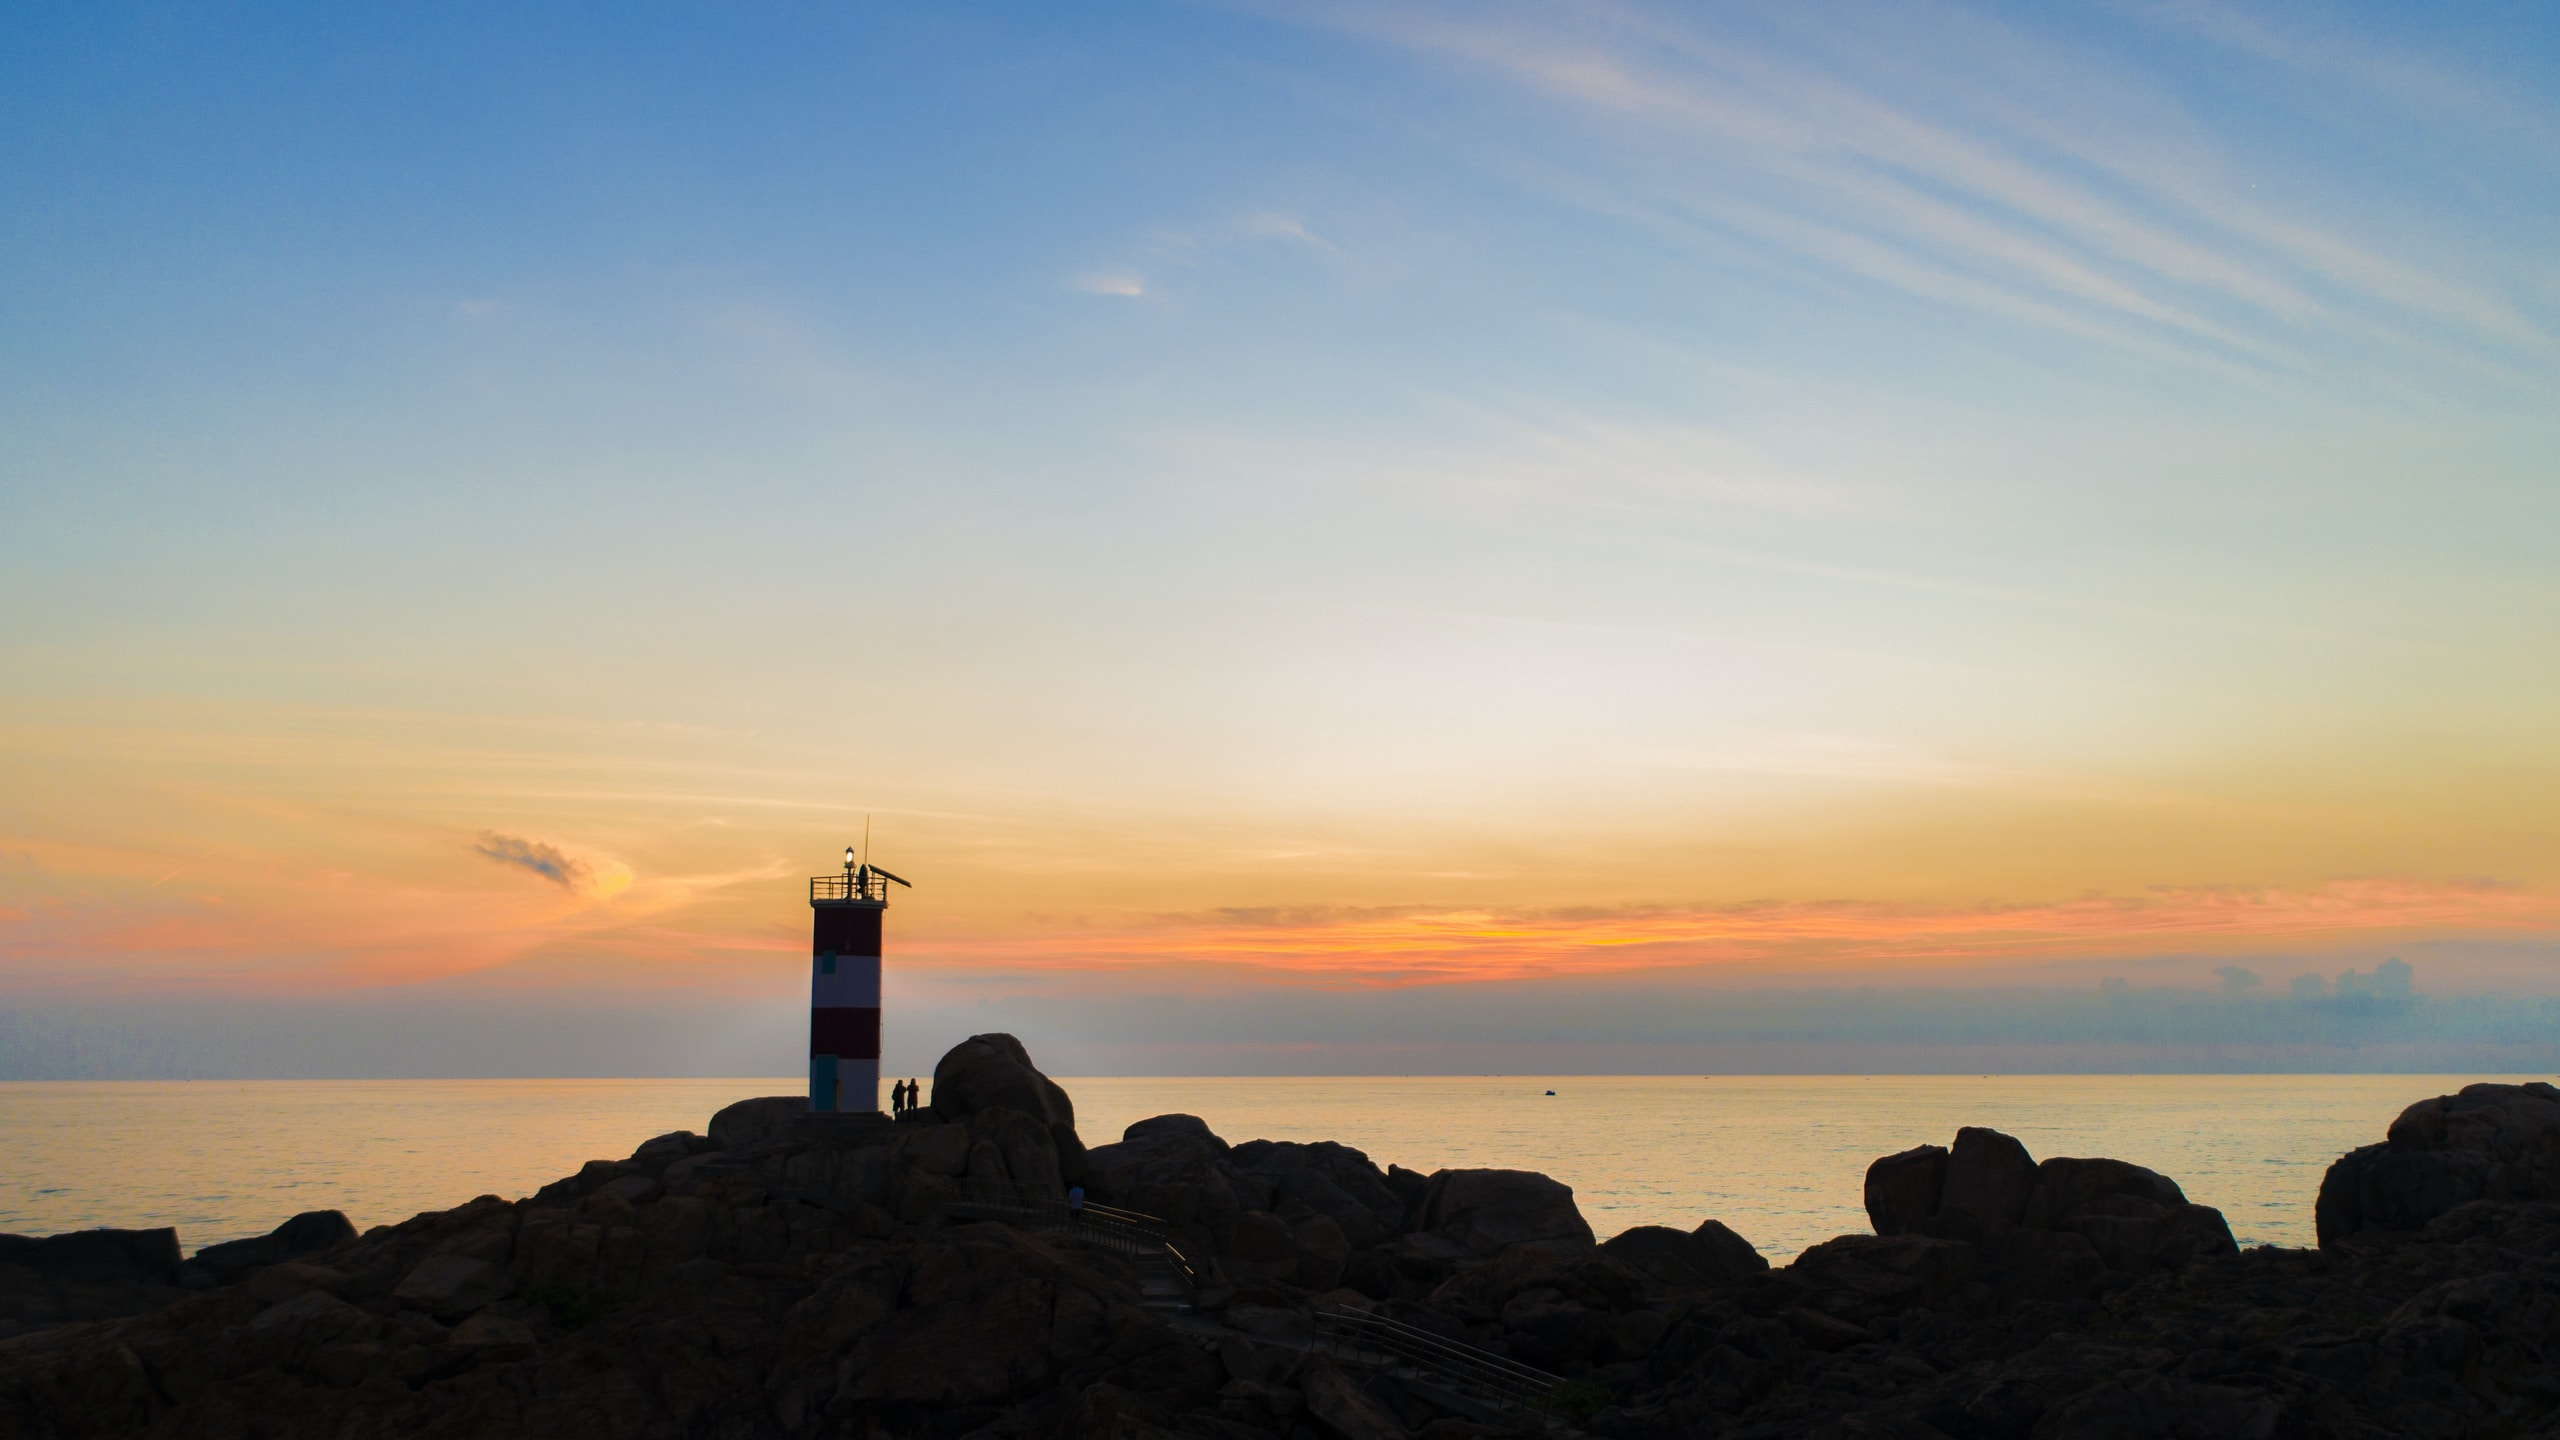 silhouette photography of lighthouse by the sea during golden hour